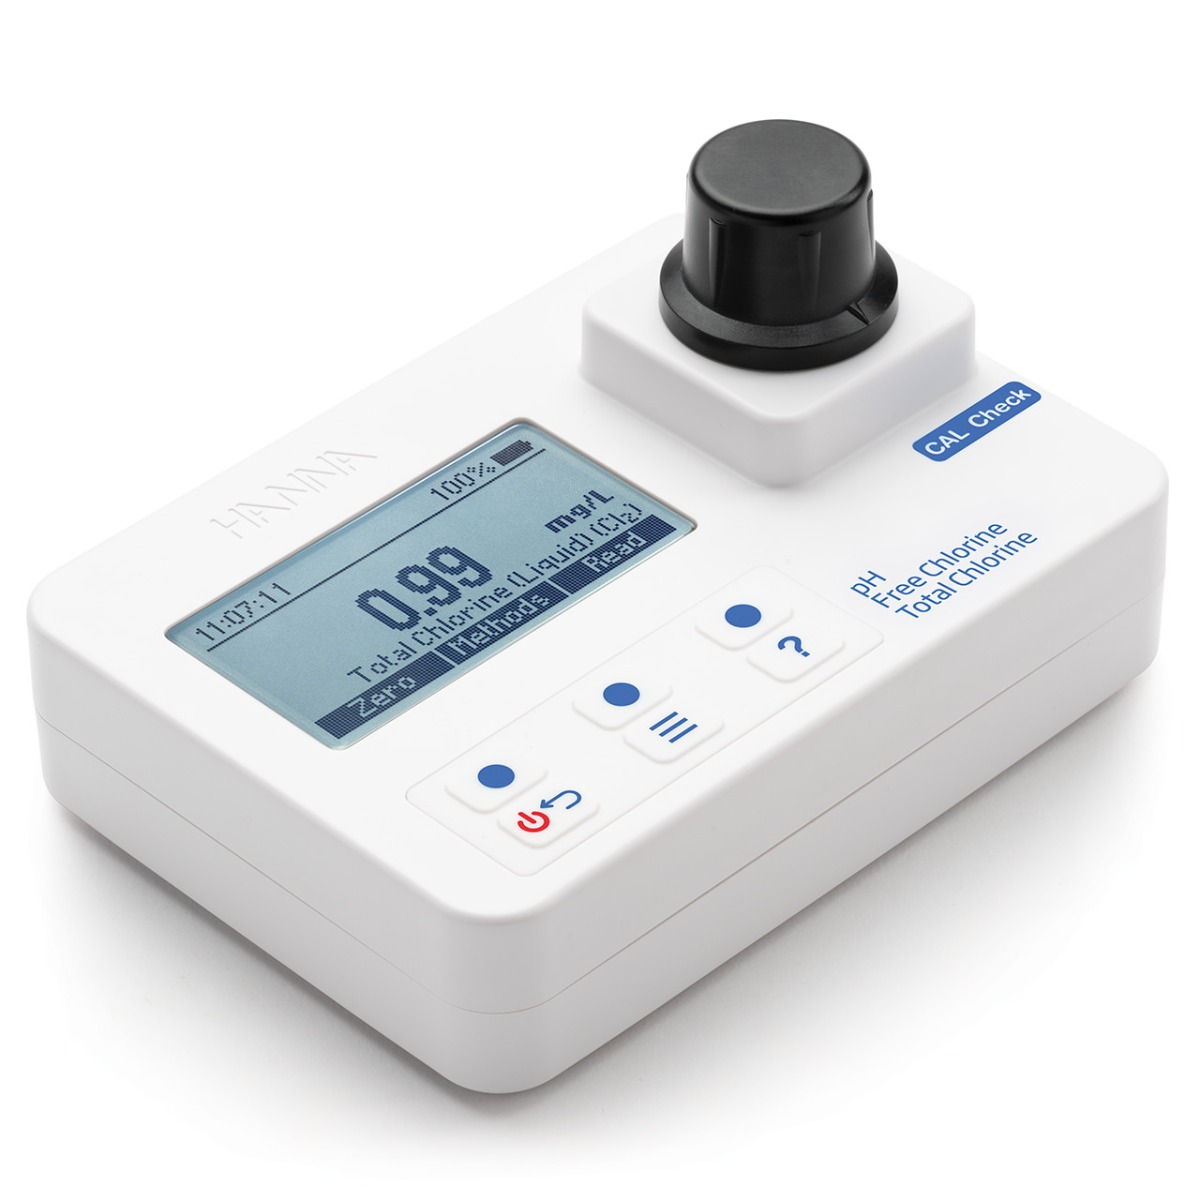 pH Free and Total Chlorine Portable Photometer with CAL Check - HI97710